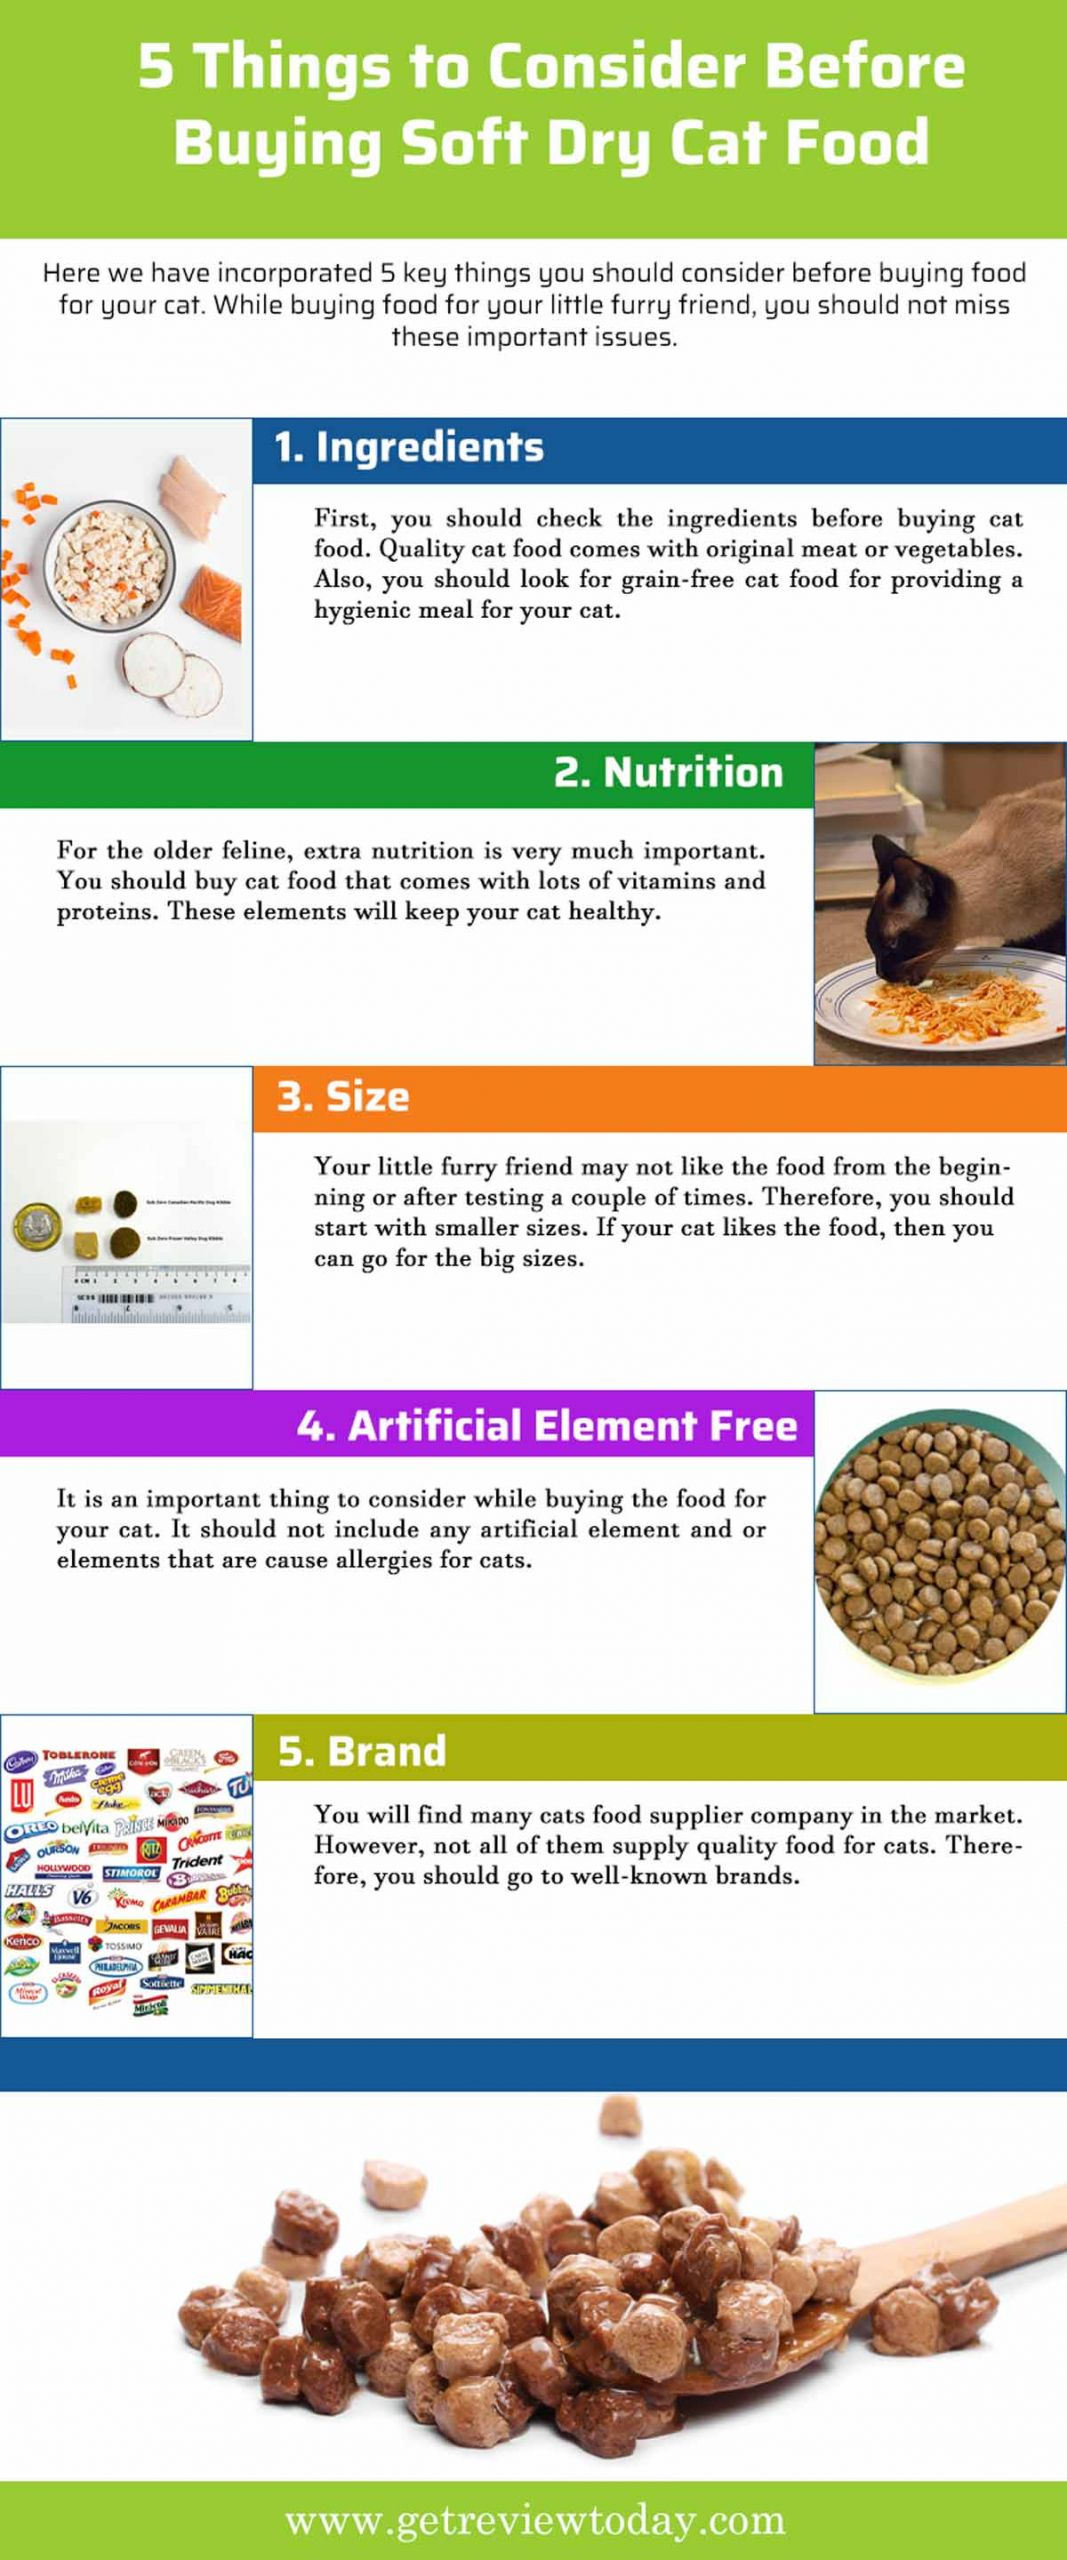 5 Things to Consider Before Buying Soft Dry Cat Food